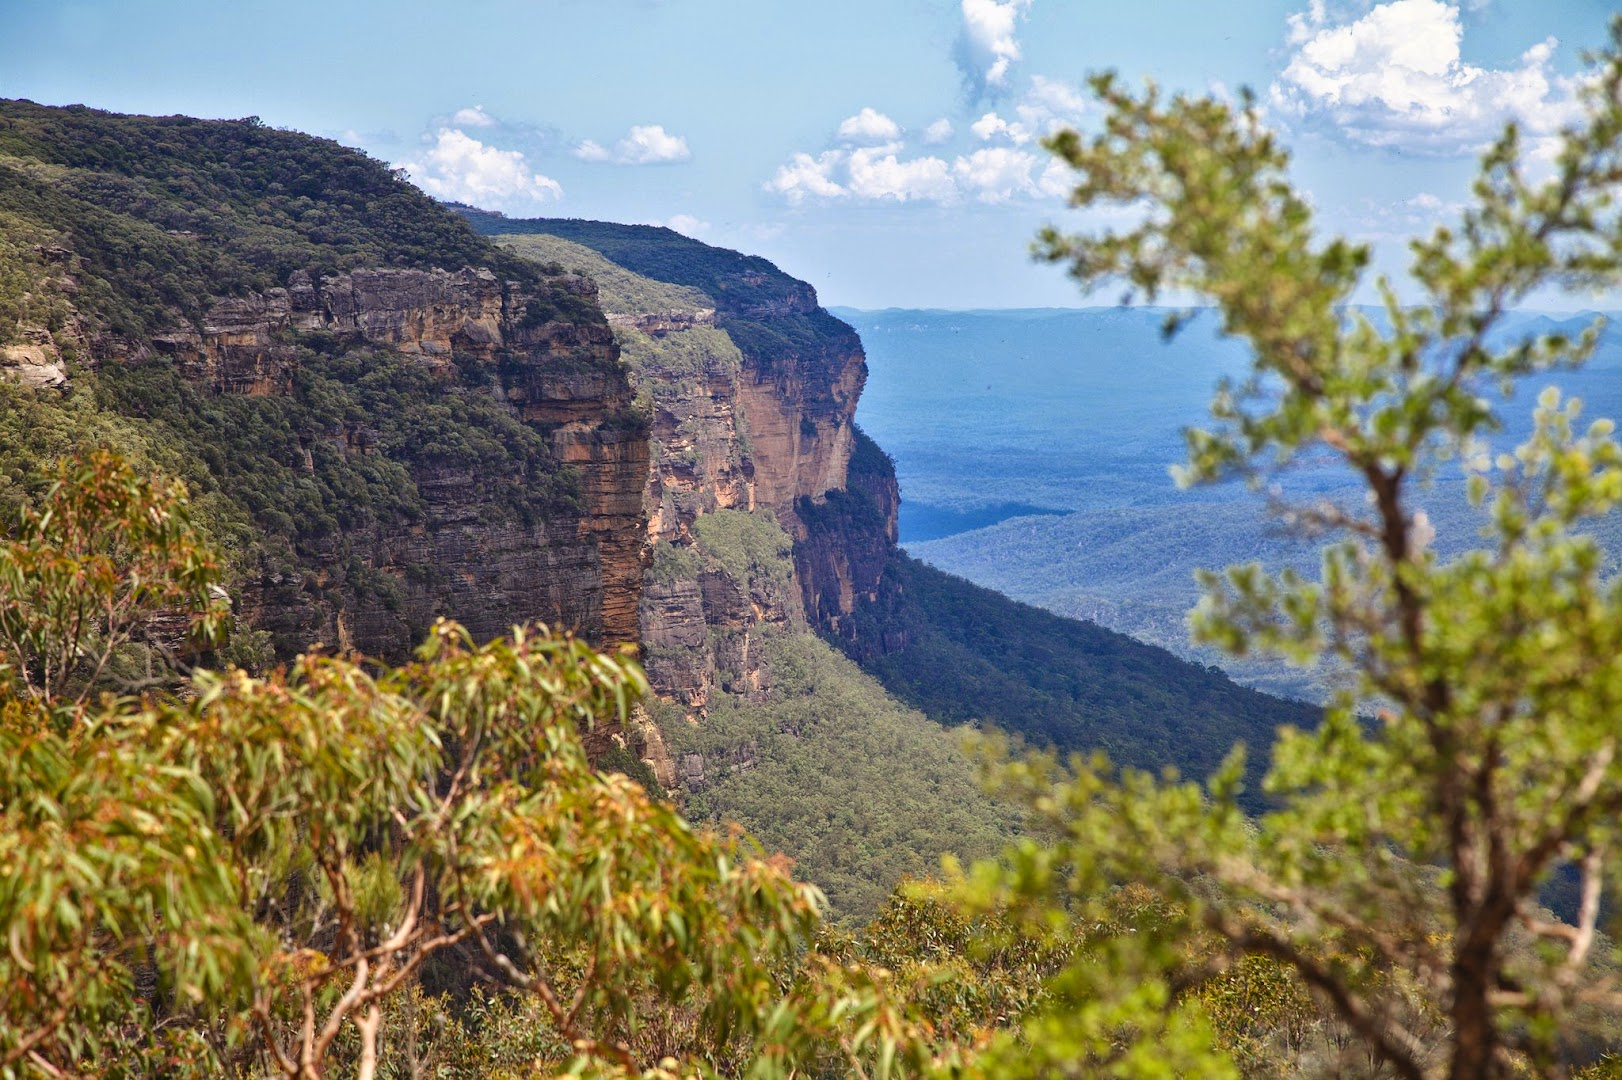 In the Blue Mountains, just 200 km outside of Sydney